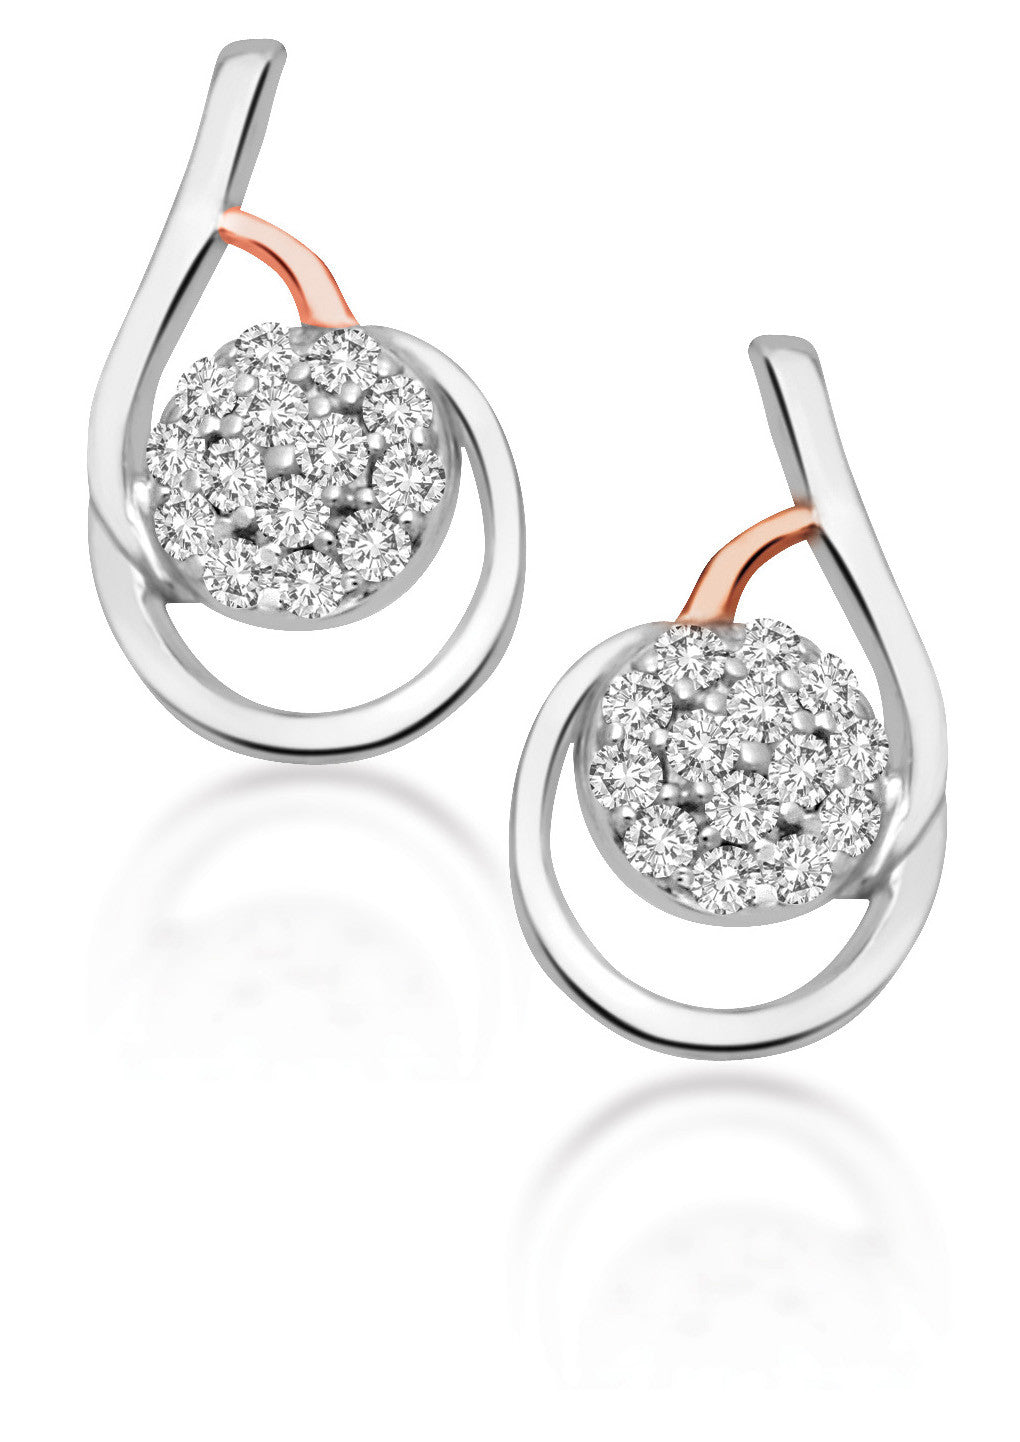 10Kt White Gold Earrings with Diamond Cluster Center and Rose Gold Accent